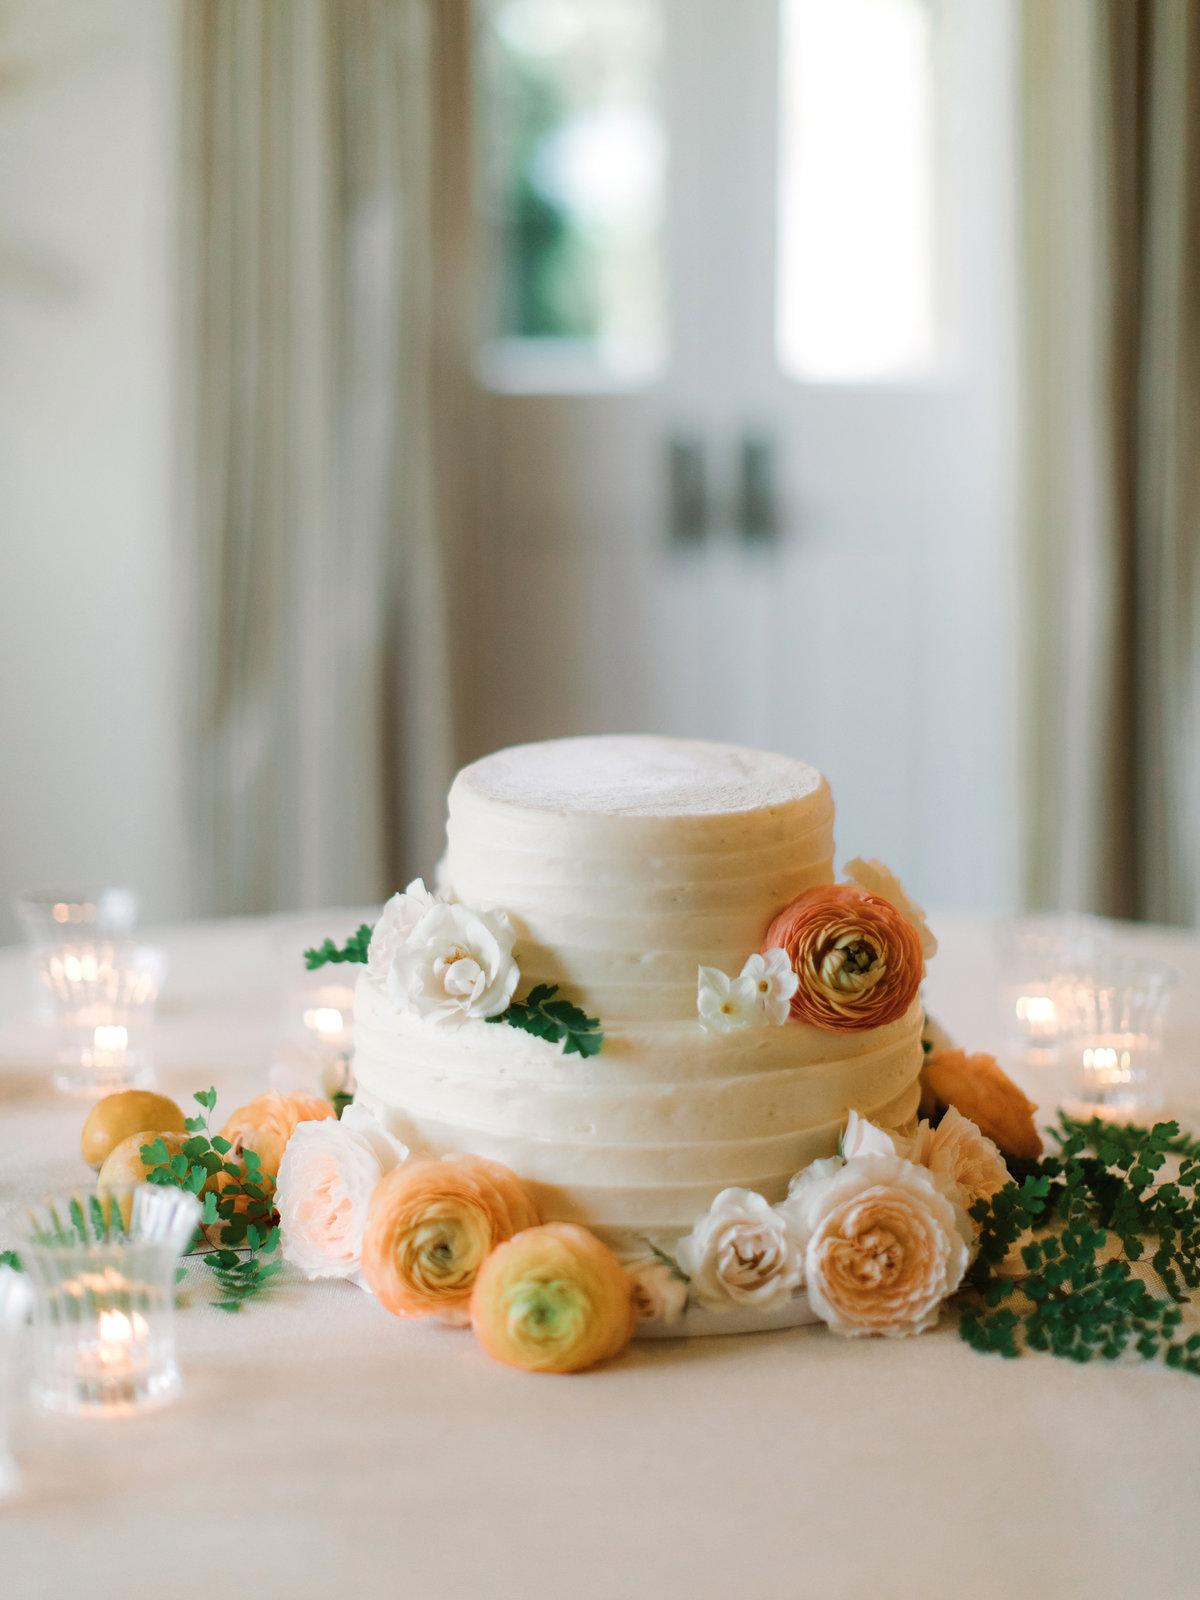 Cake for wedding by Jenny Schneider Events at a private residence in Marin County, California.